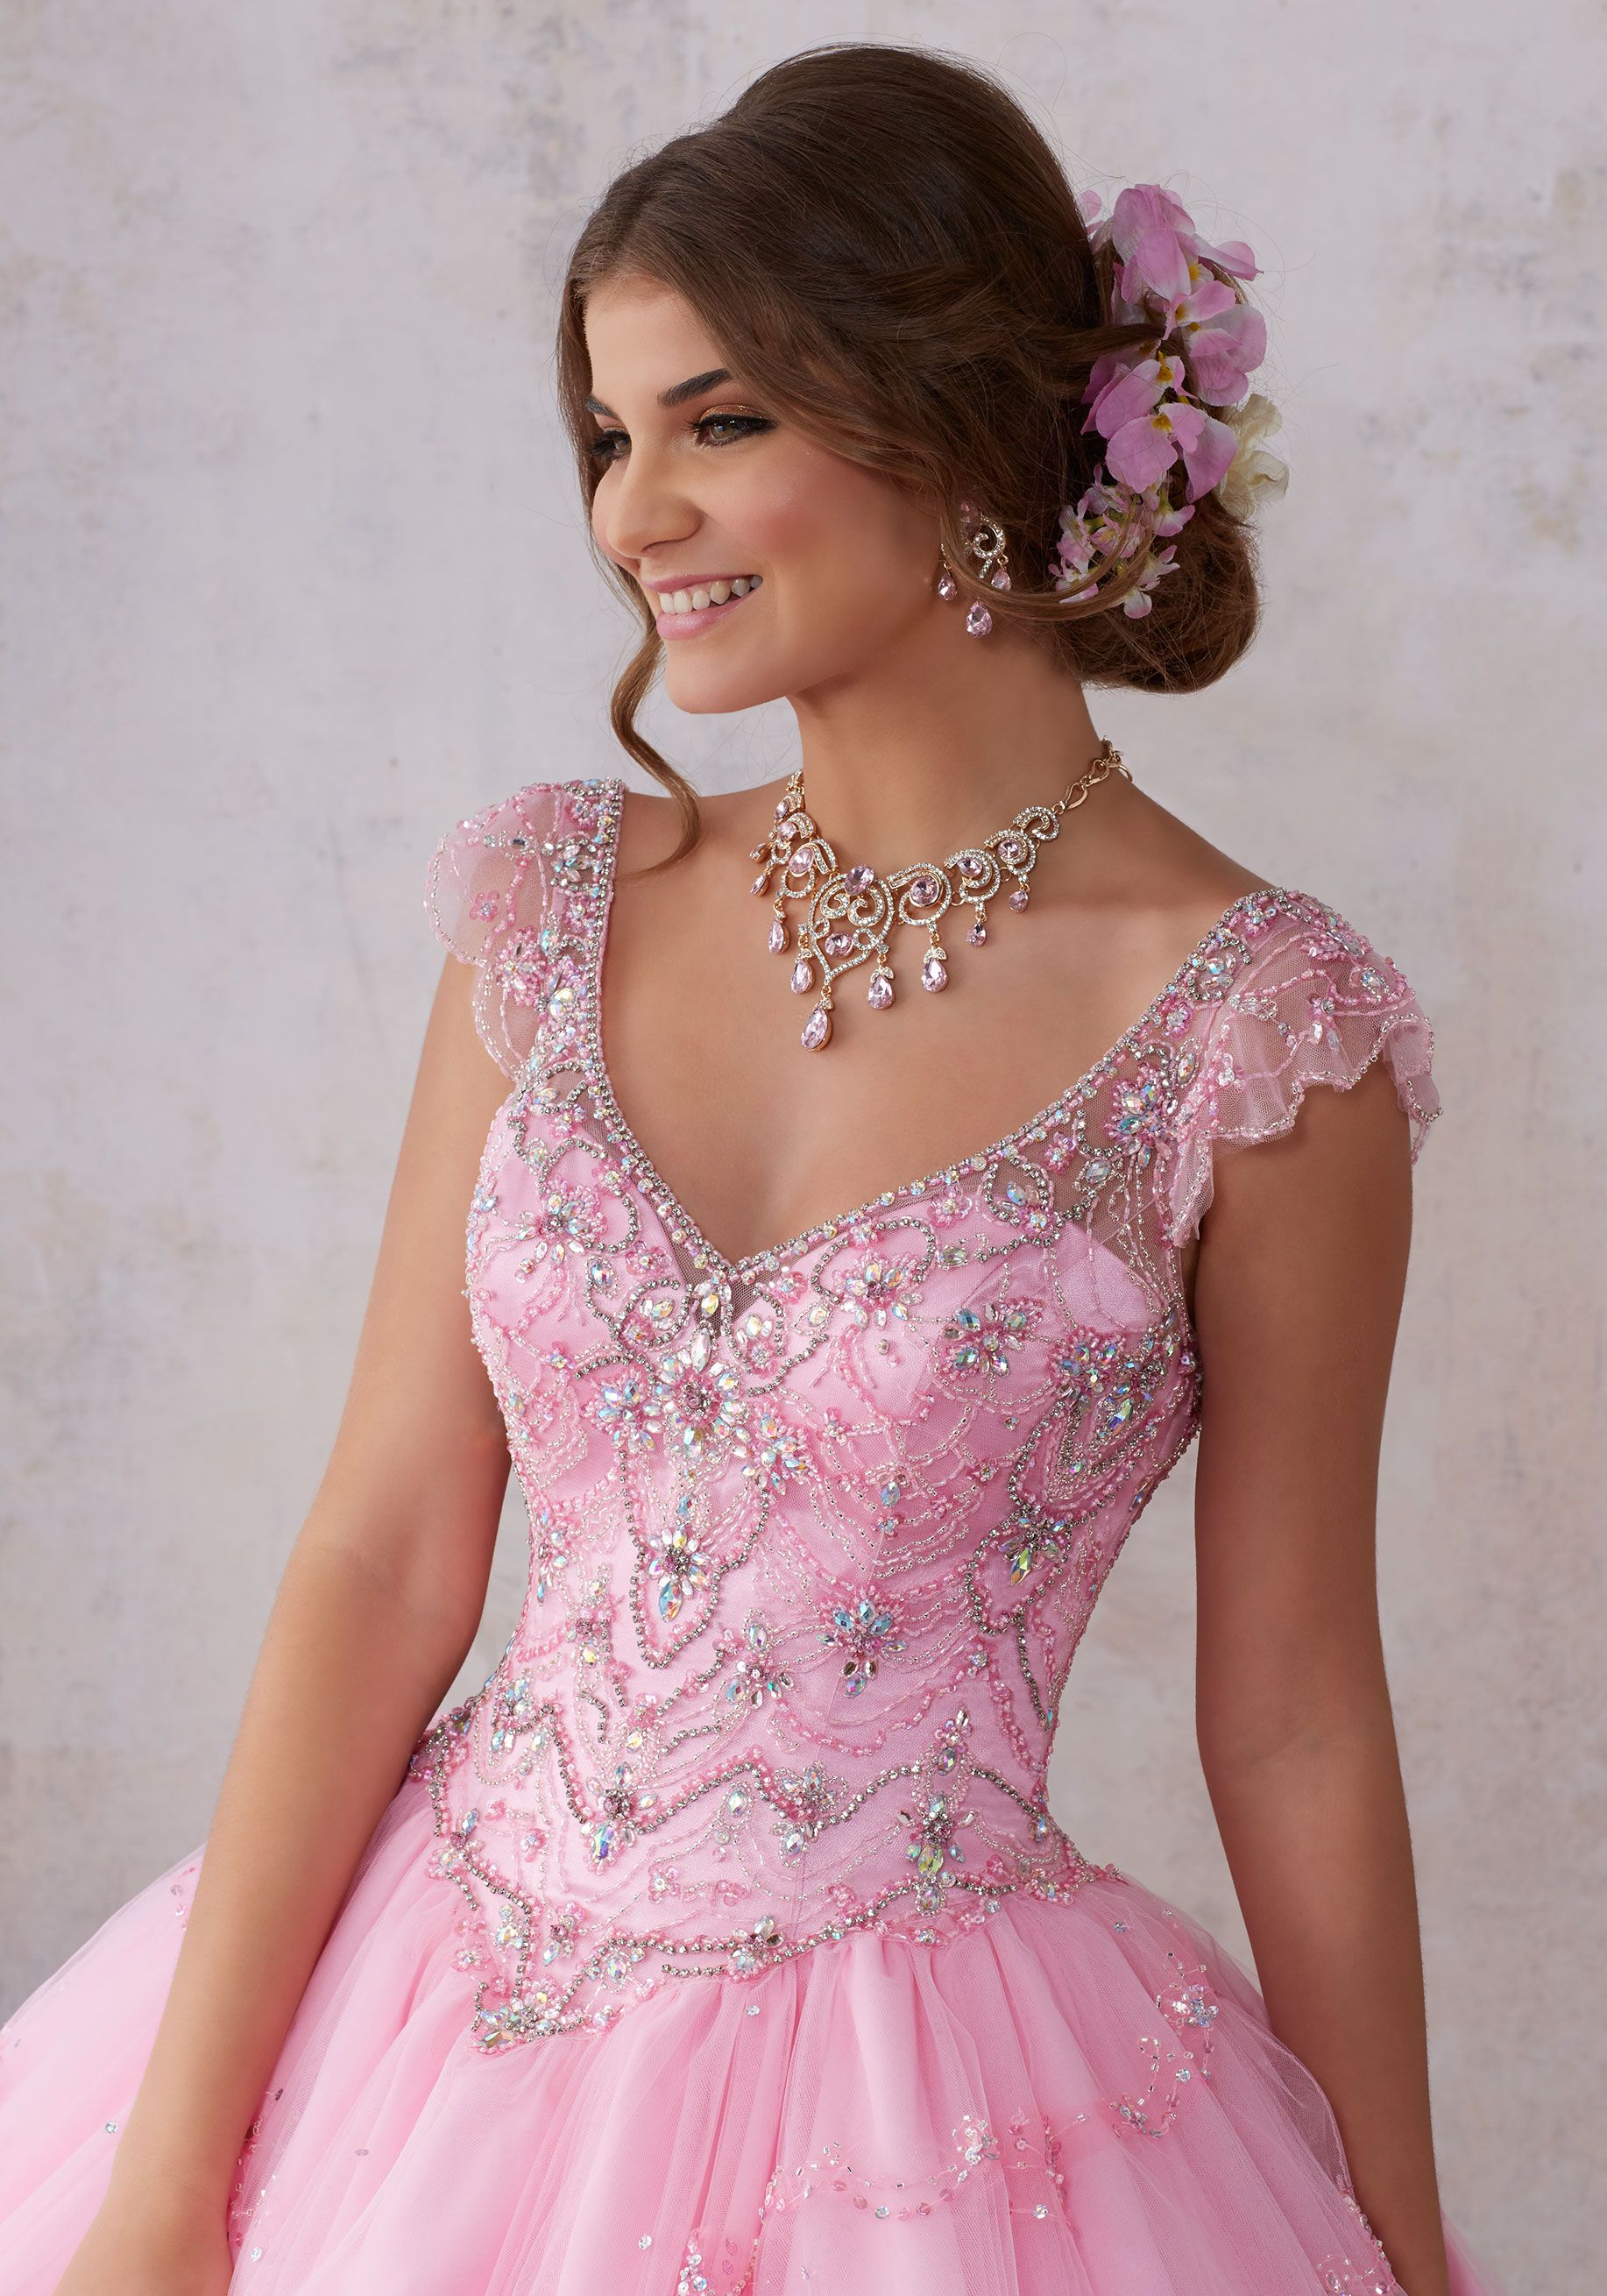 Fit for a Fairytale, This Tulle Quinceañera Ballgown Features a ...